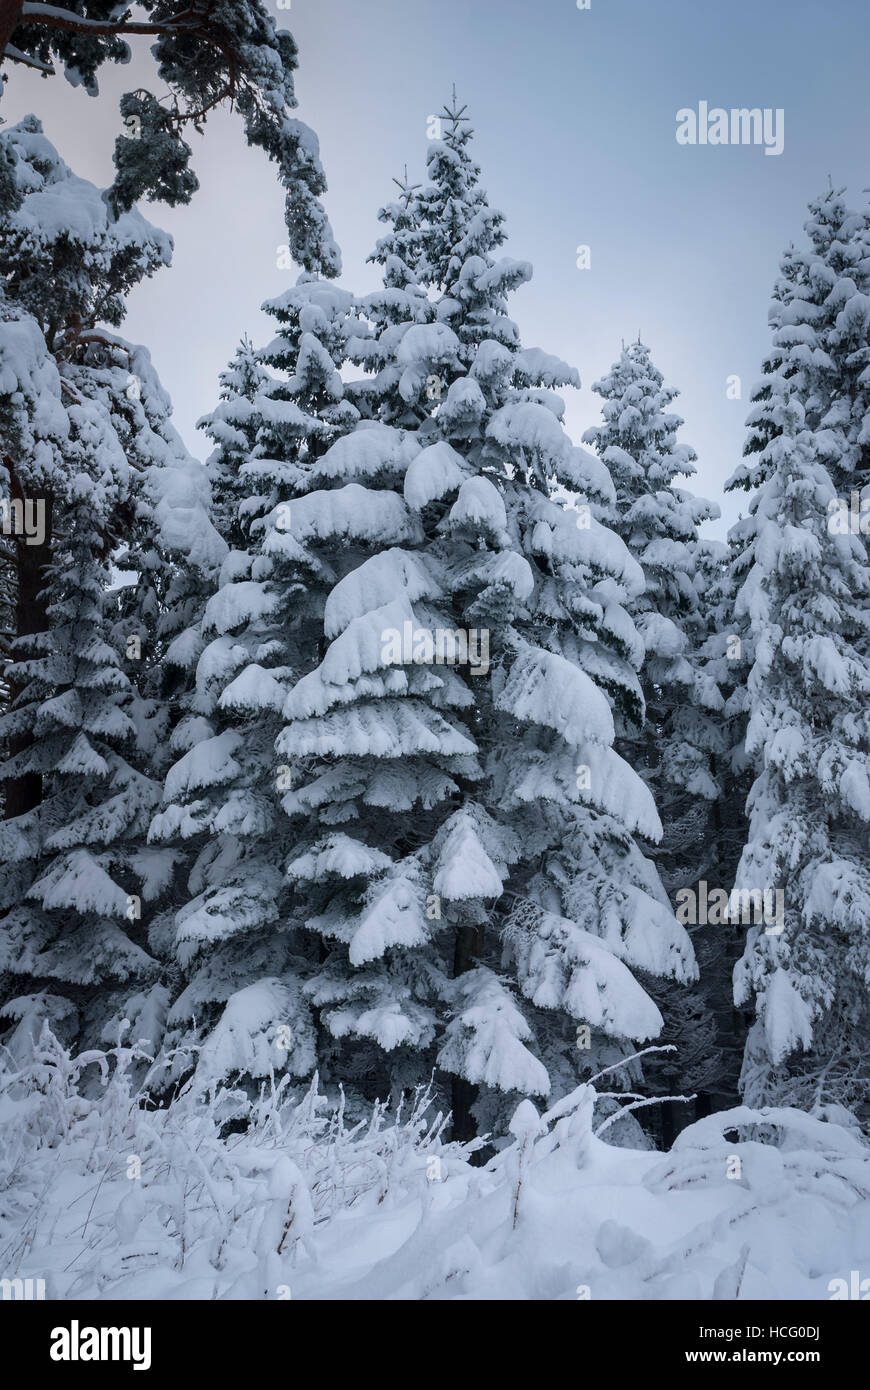 Snow laden pine trees stock photos snow laden pine trees - Images of pine trees in snow ...